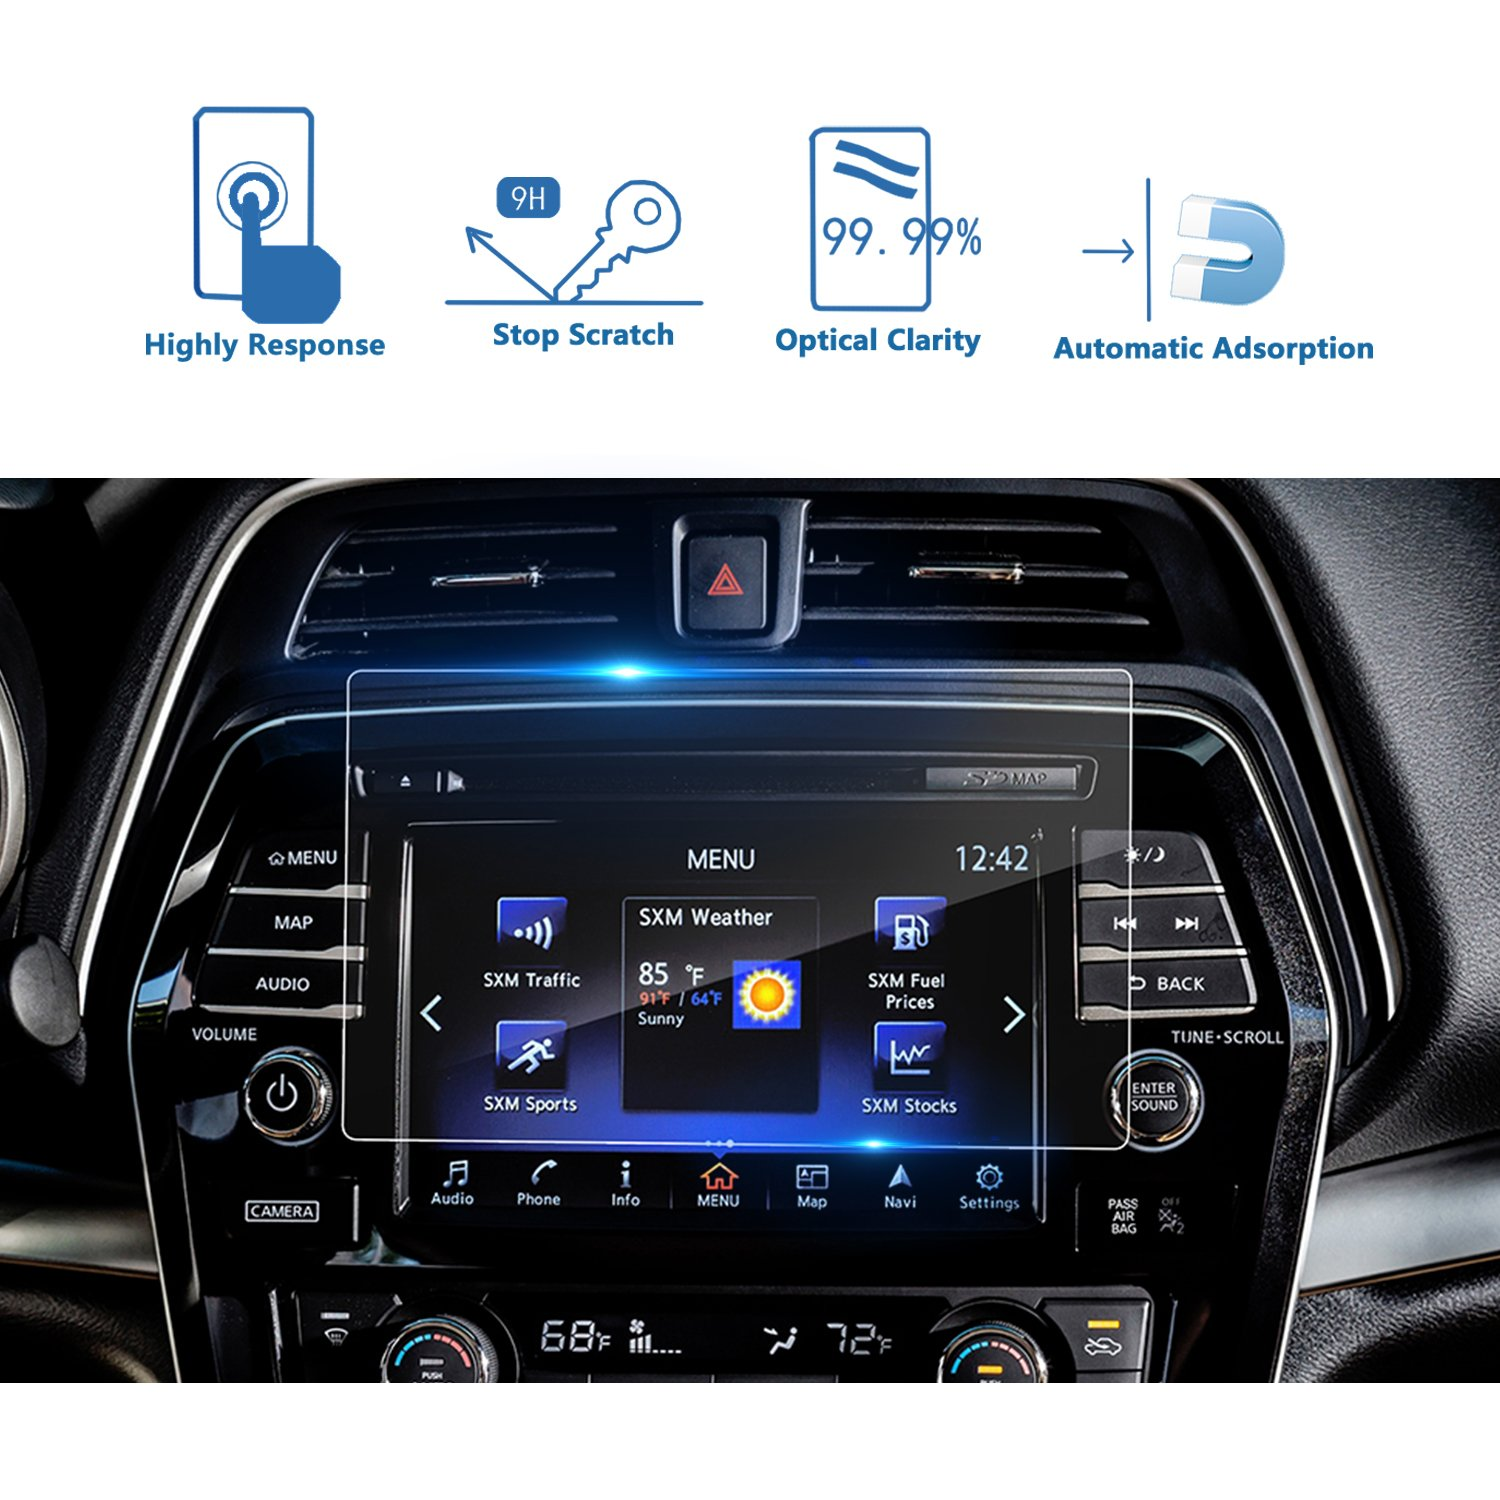 LFOTPP Nissan Maxima Murano 8 Inch 2016 2017 Car Navigation Screen Protector Glass, [9H] Tempered Glass Center Touch Screen Protector Against Scratch High Clarity